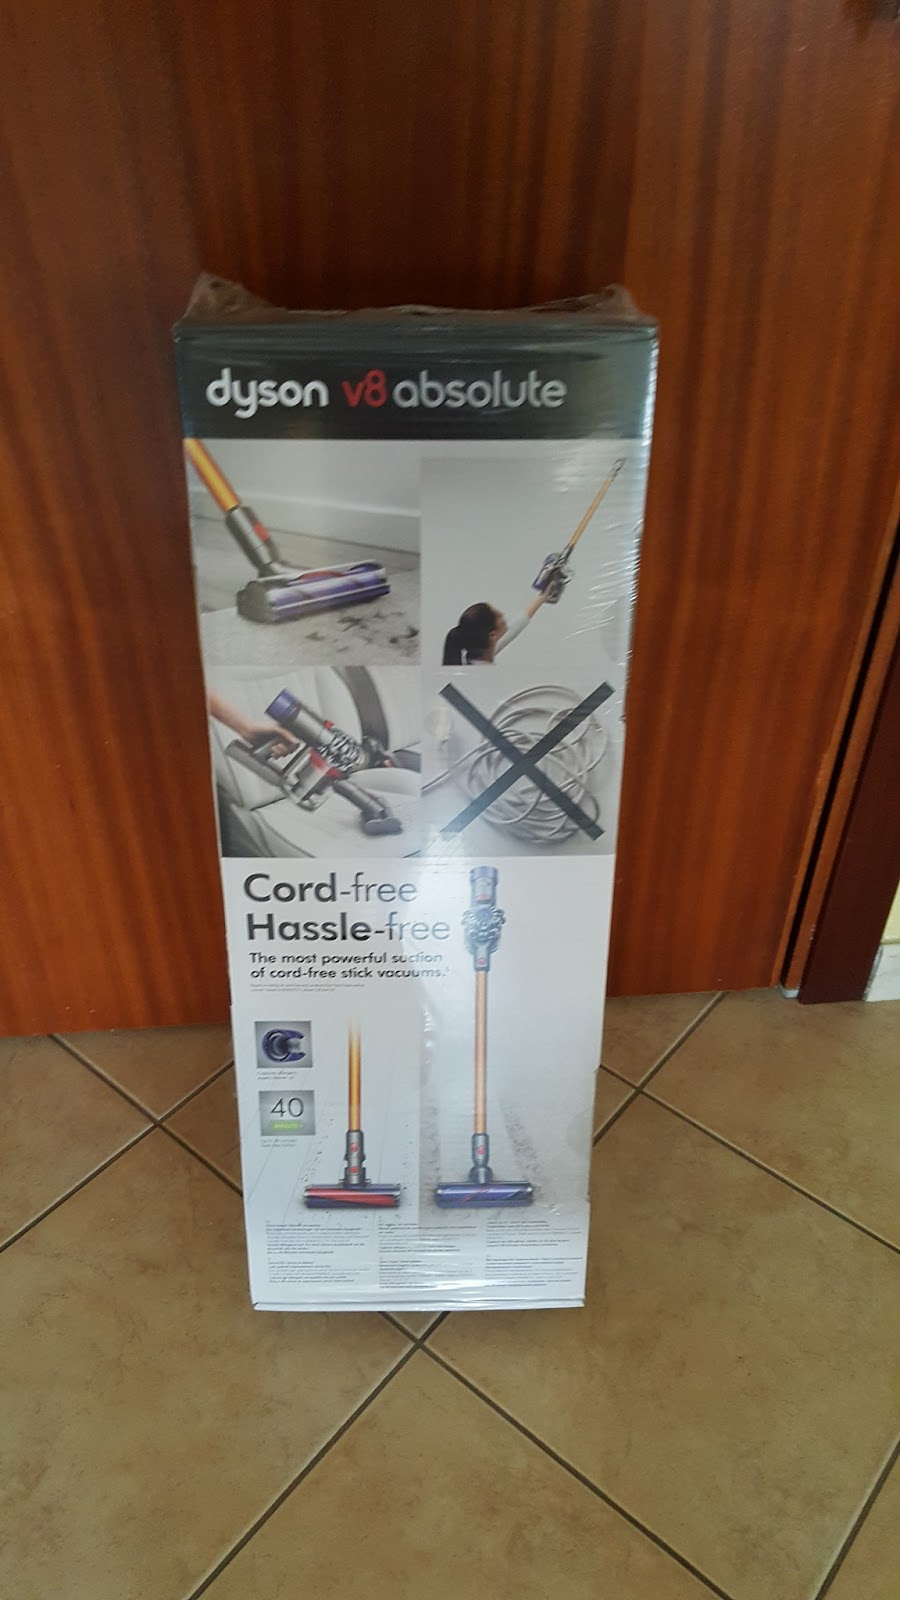 risparmiare con i coupon si pu dyson v8 absolute l 39 aspirapolvere ciclonico senza fili. Black Bedroom Furniture Sets. Home Design Ideas